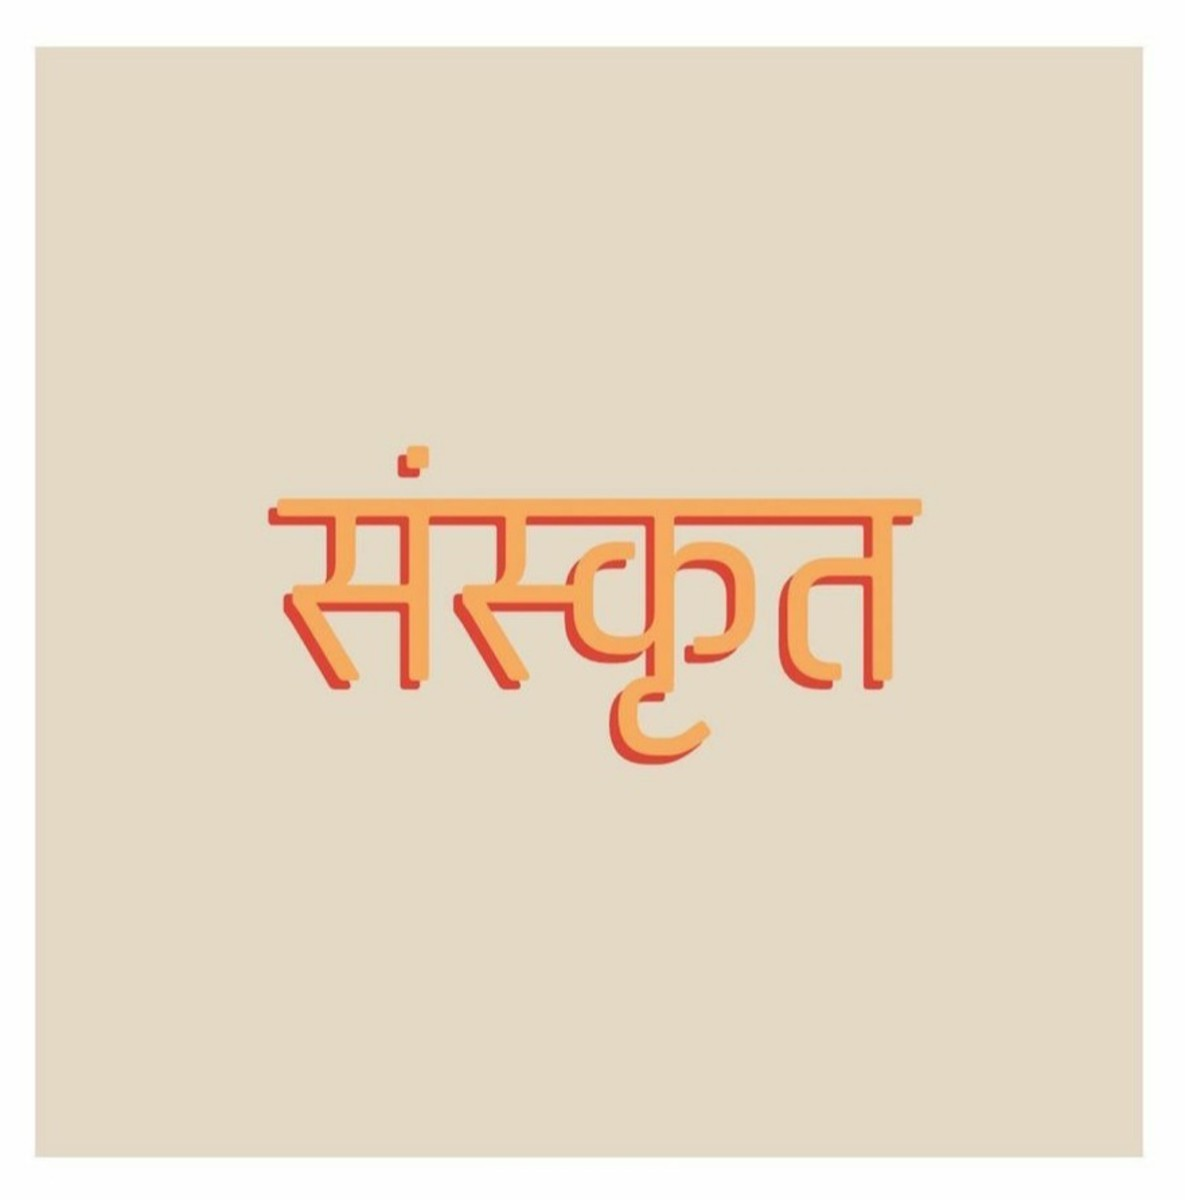 Sanskrit-an ancient language which originated in India.